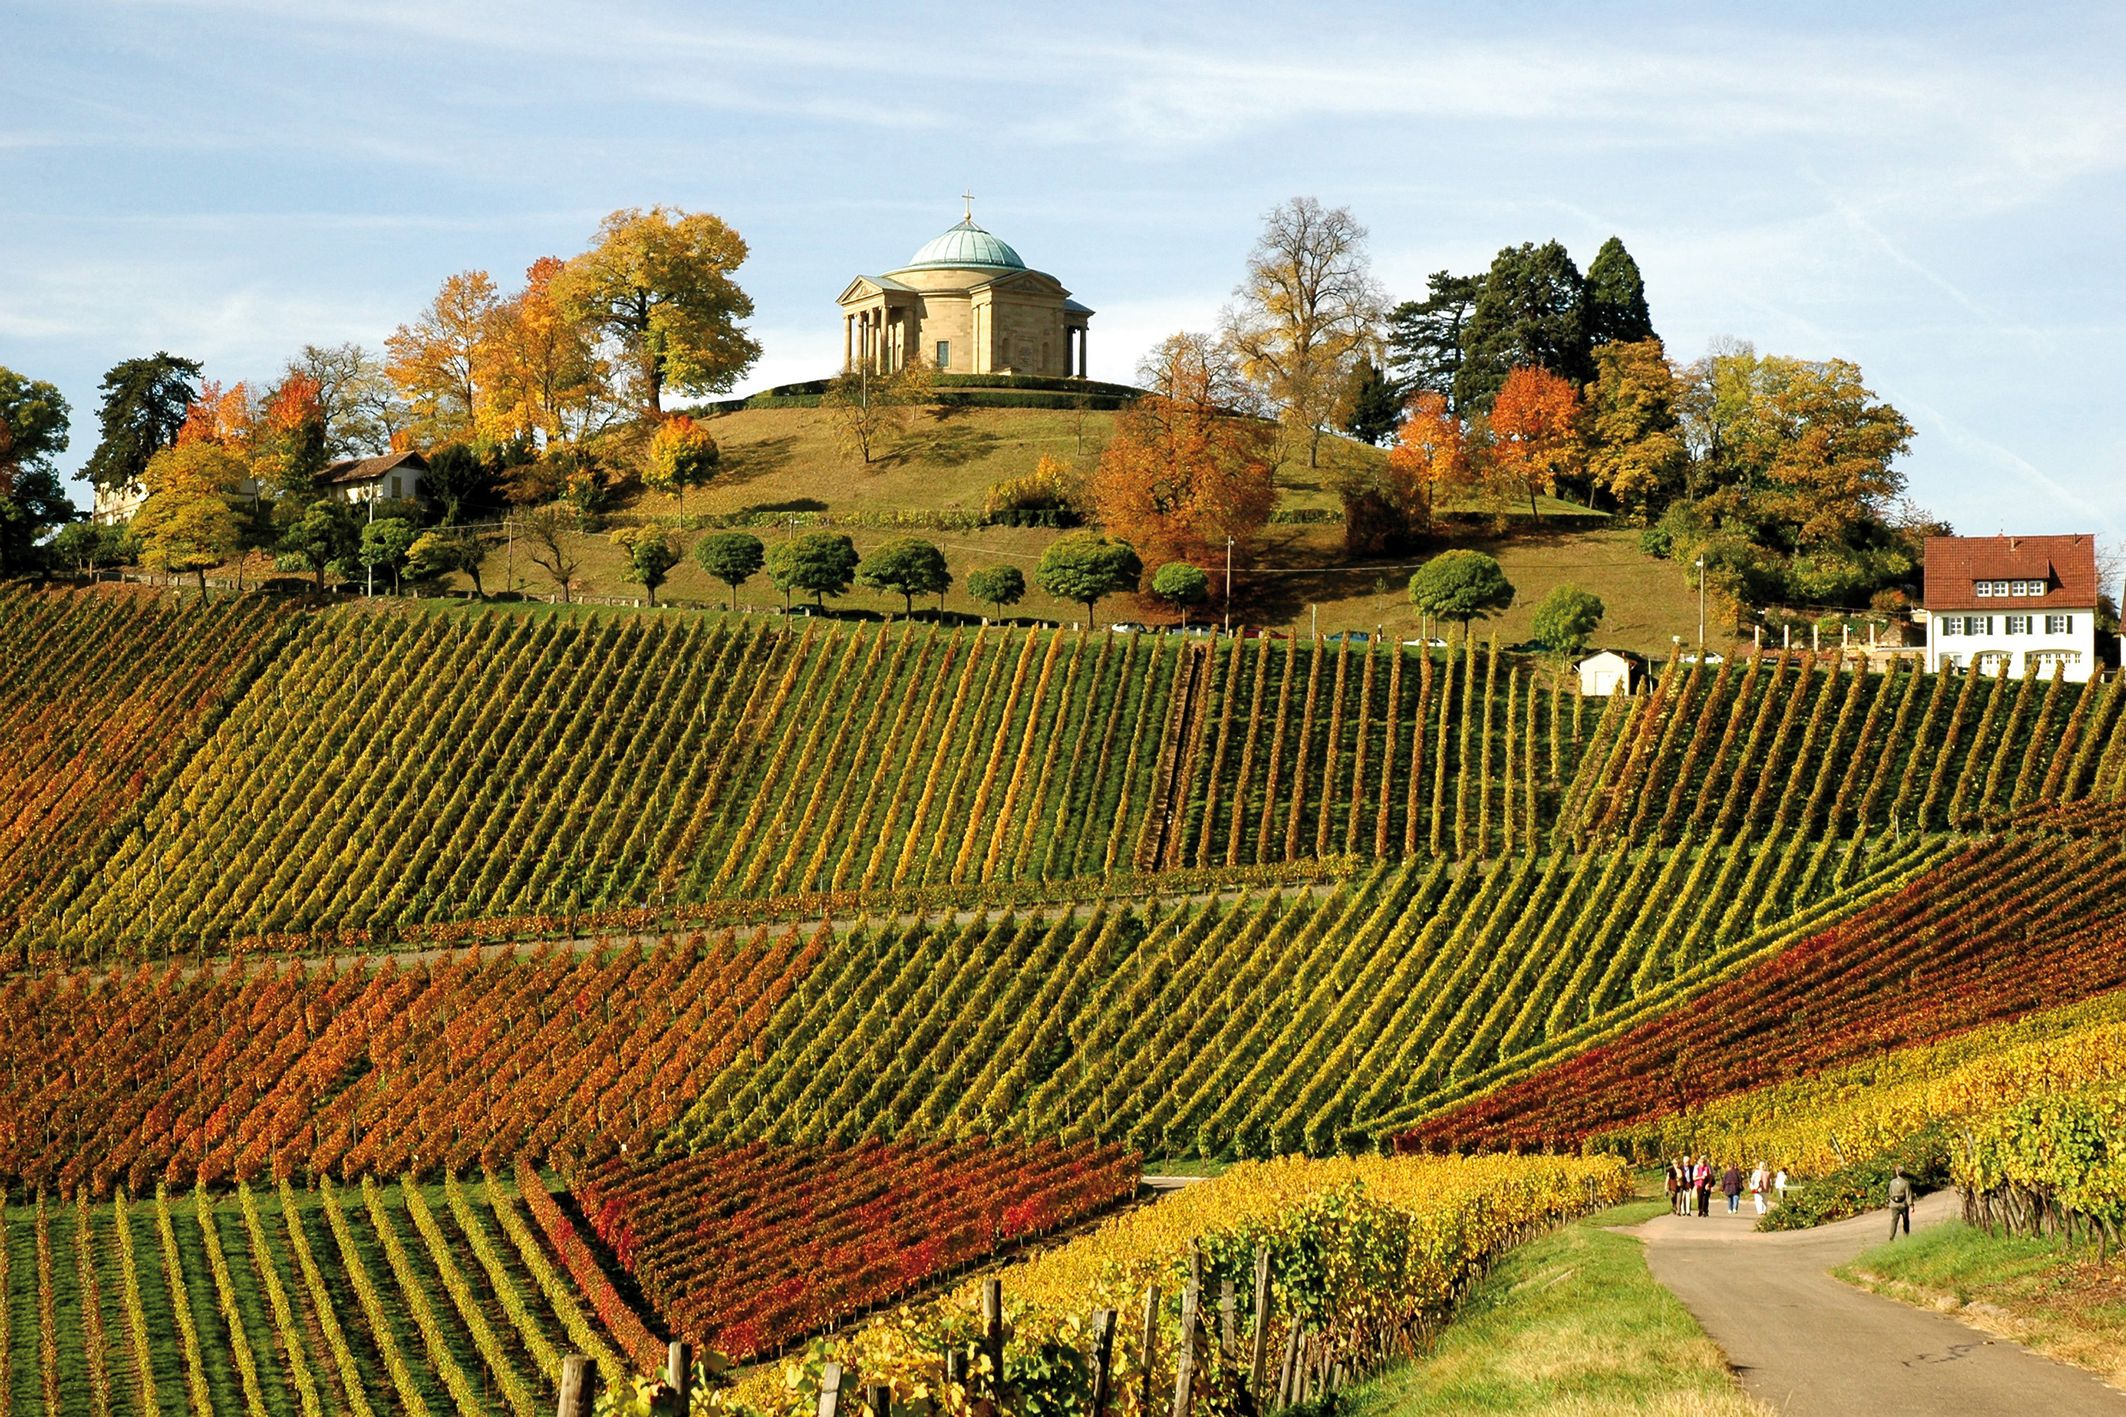 Grave chapel and vineyards. Copyright: StuttgartMarketing GmbH